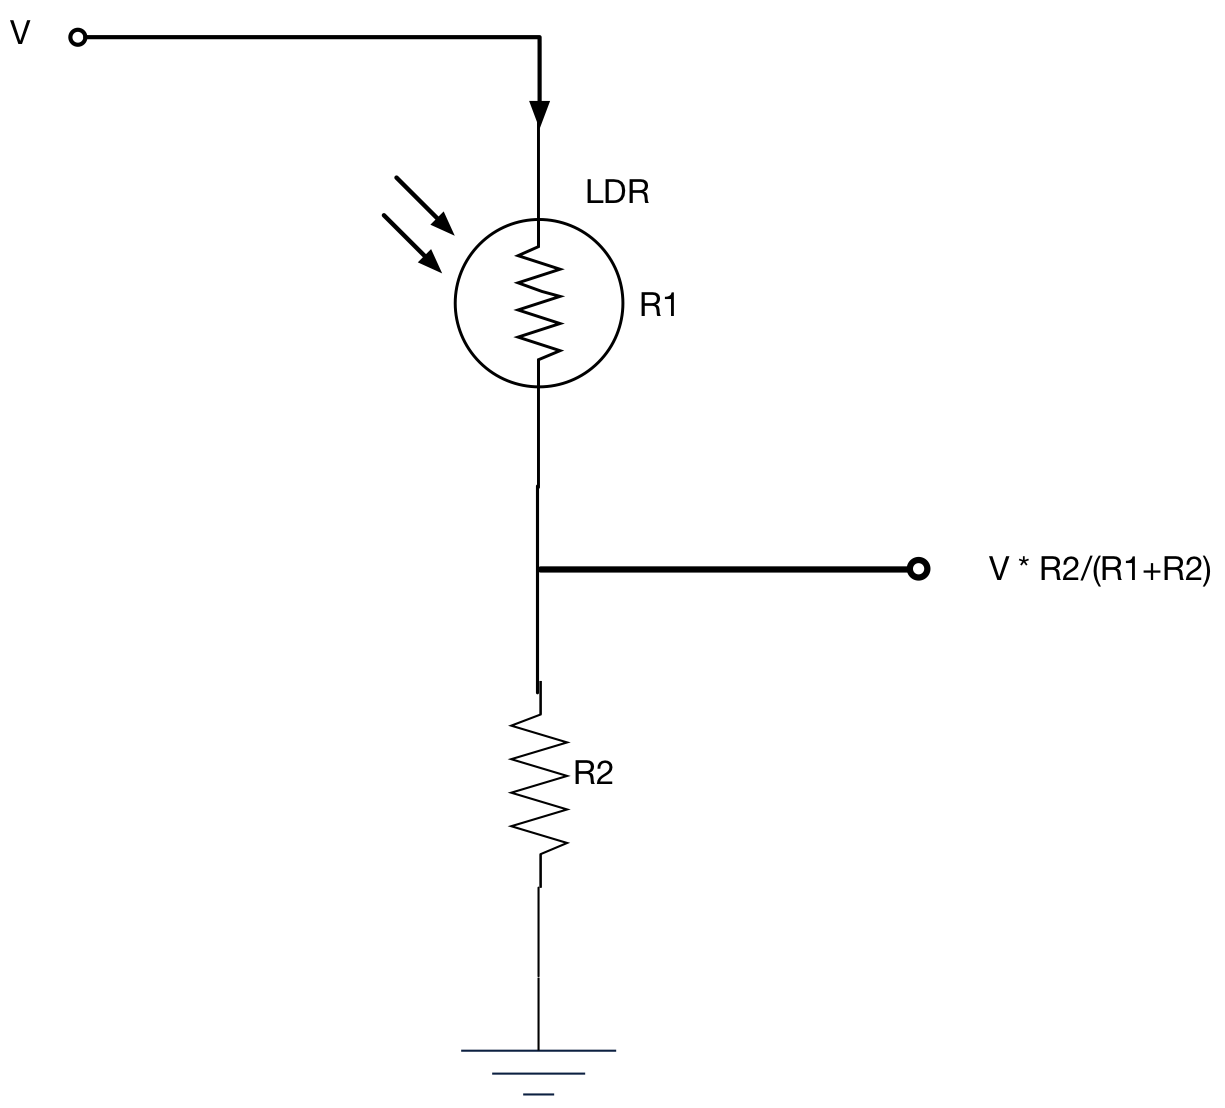 Light Dependent Resistor Ldr Glossary Entry Embedded Systems Resistive Voltage Divider Schematic Using An Within A Potential Circuit To Generate